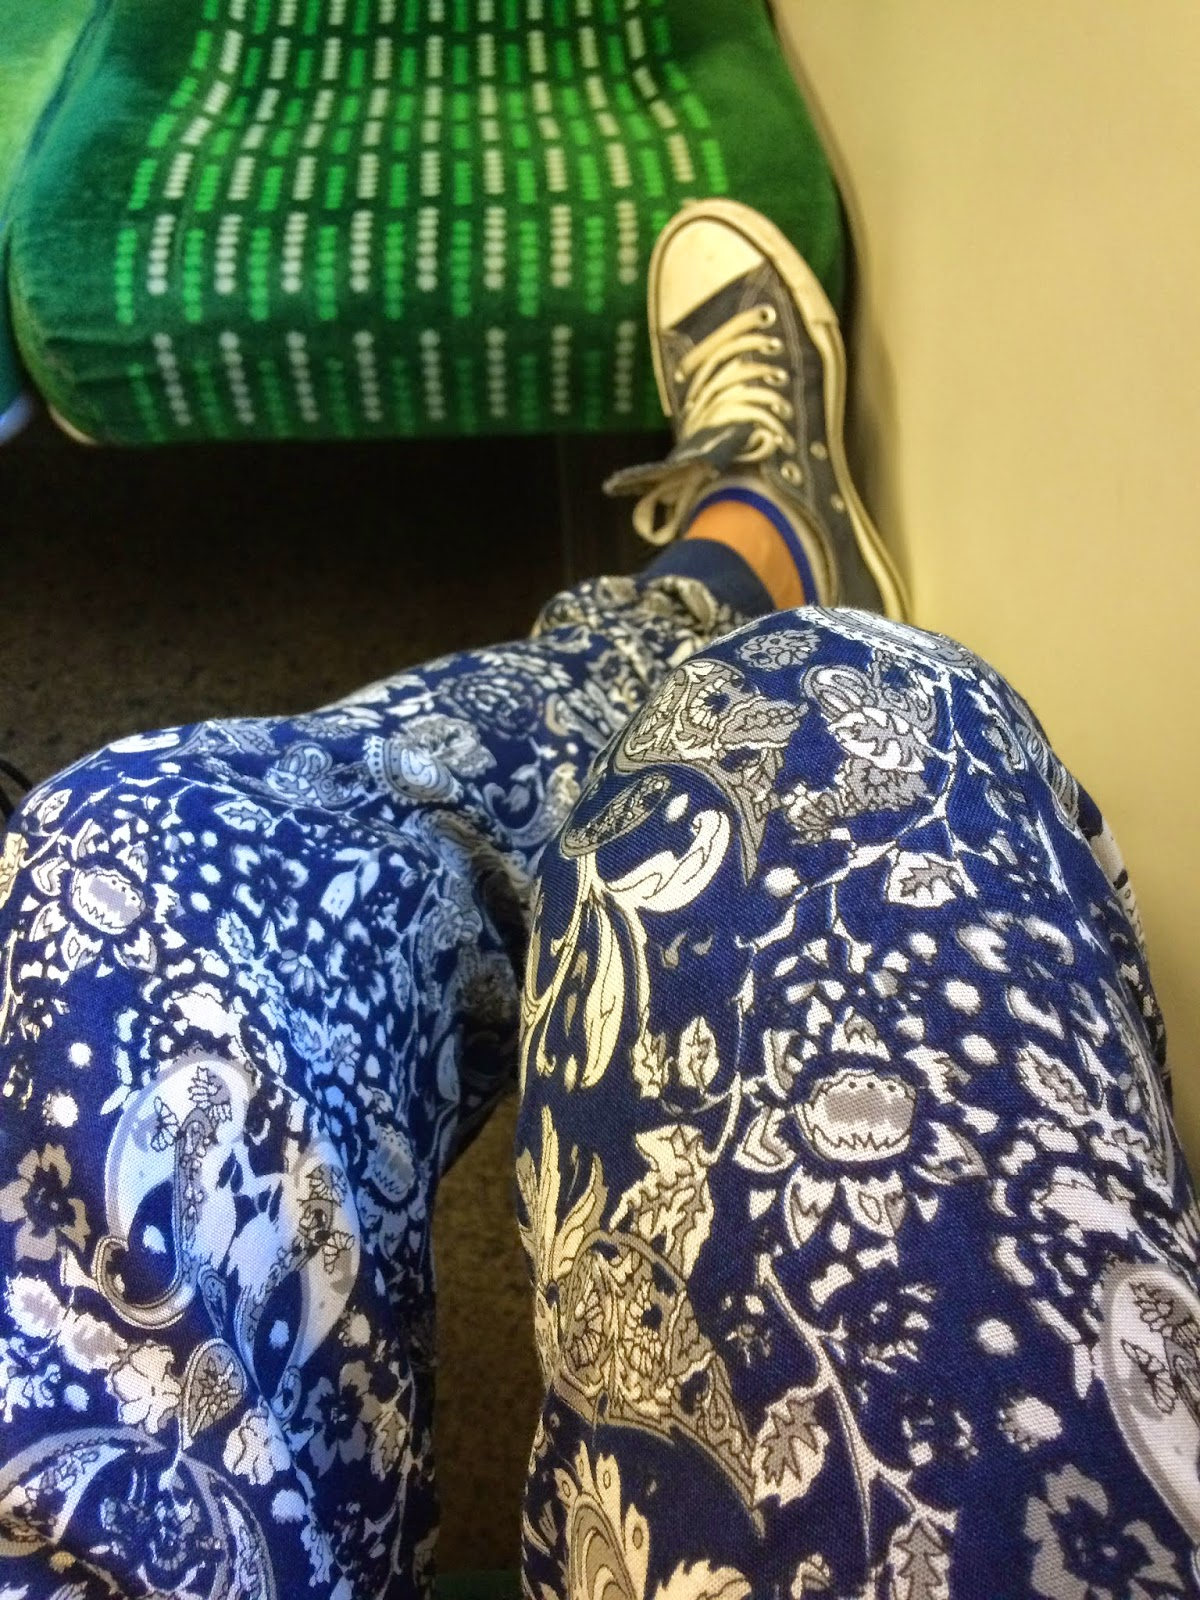 blogger on train wearing converse